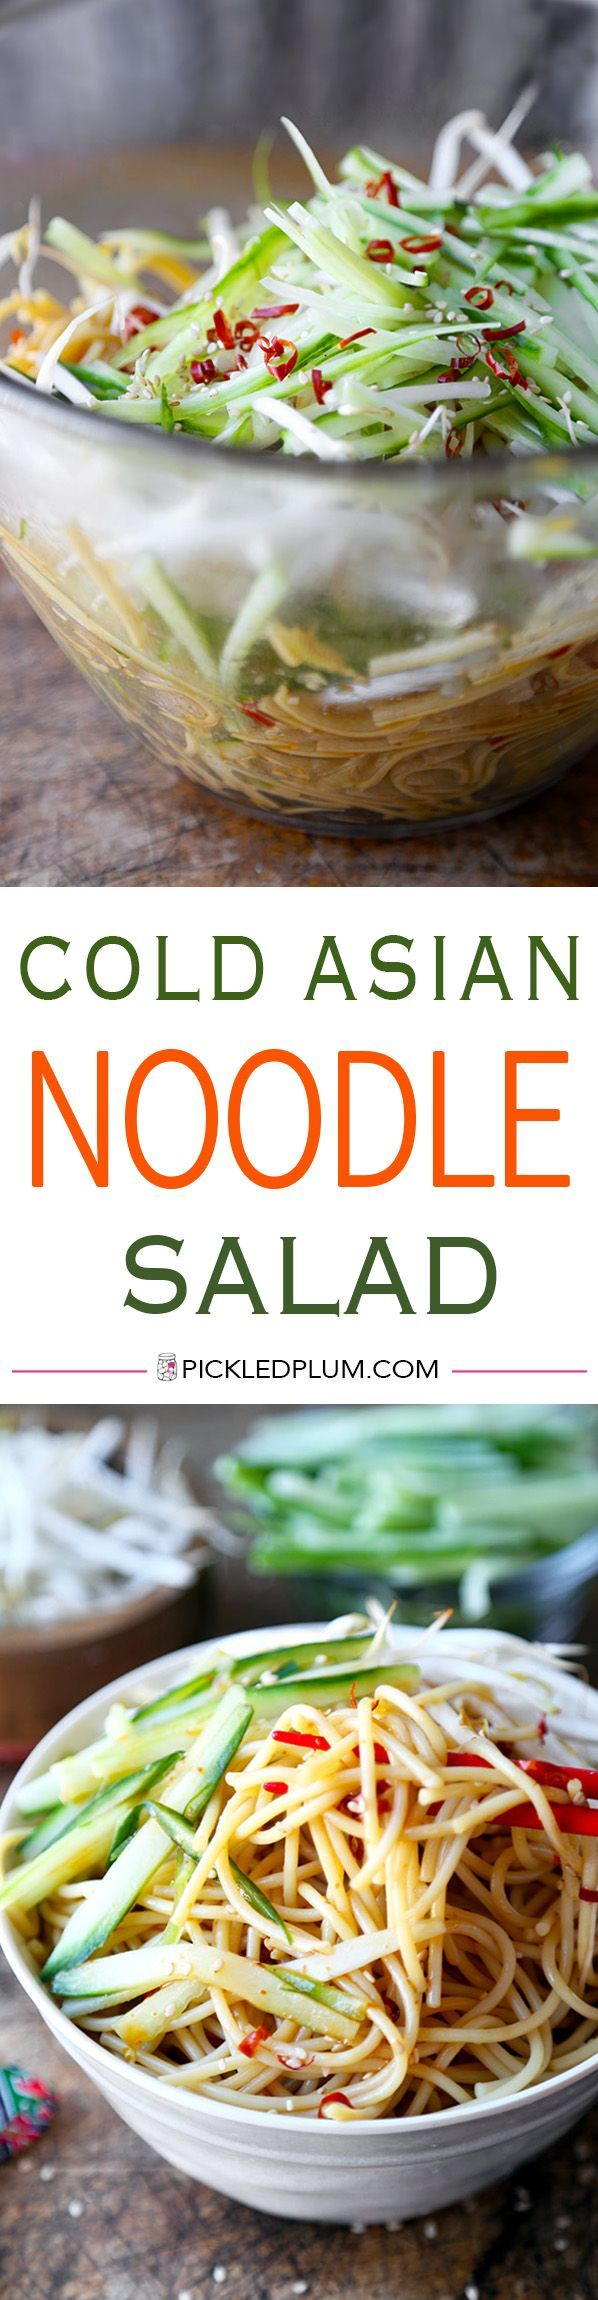 Cold Asian Noodle Salad - This is a quick and easy, spicy and nutty cold Asian noodle salad your whole family will love! Perfect for a barbecue or as a light lunch or dinner + ready in just 15 minutes! Easy, Recipe, Chinese, Salad, Noodles, Vegan, Vegetar